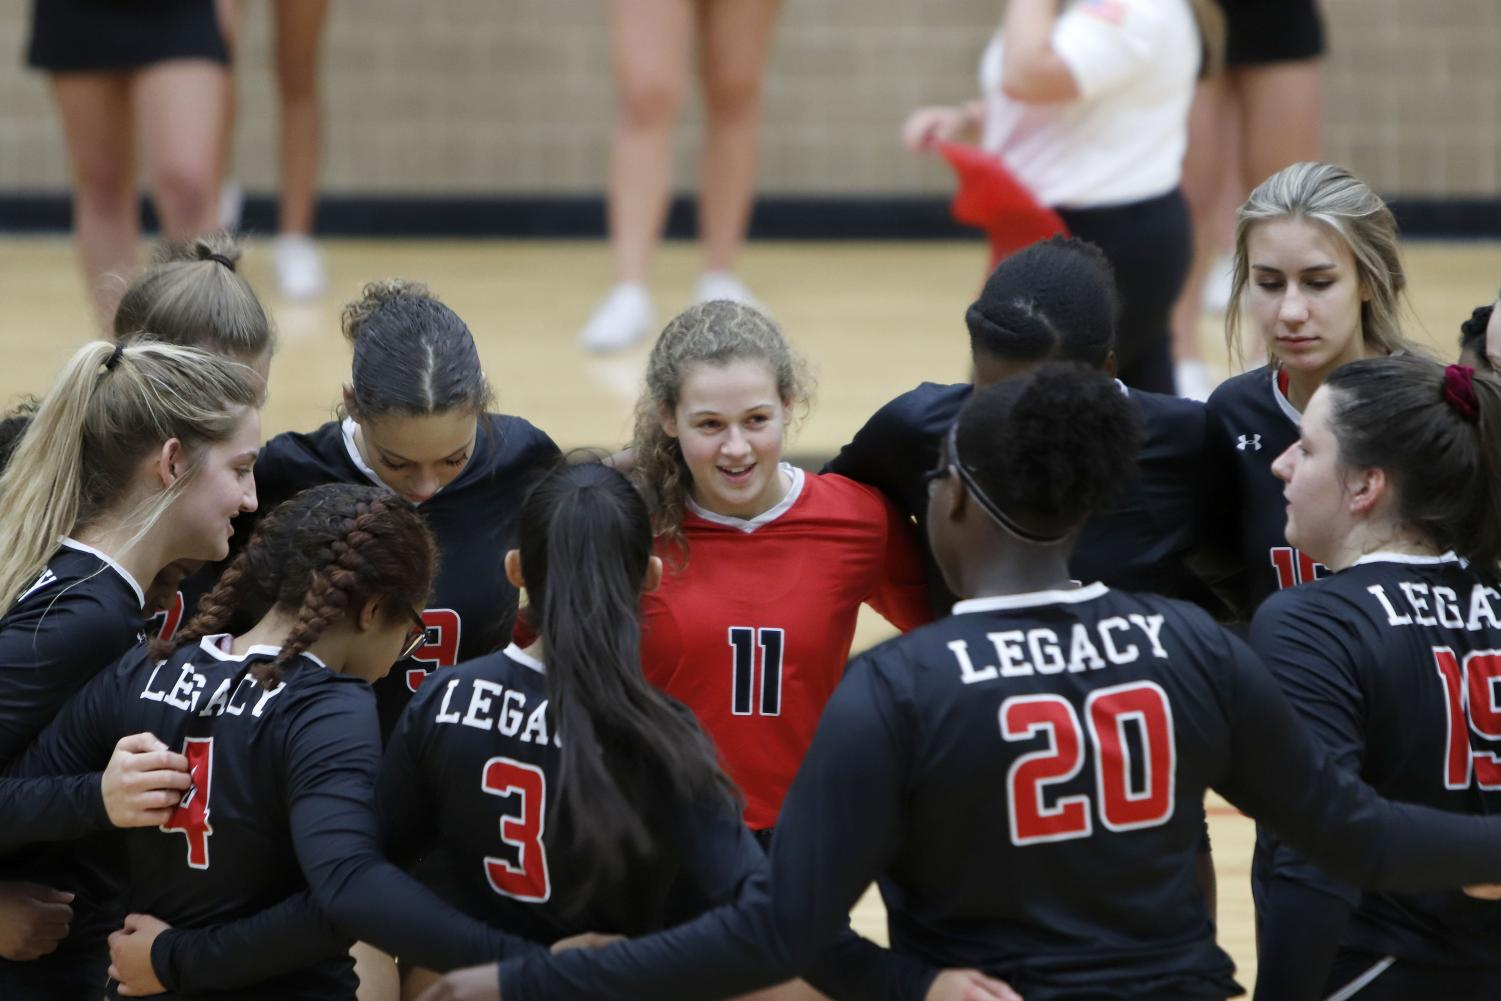 Payton Hyden, 11, and teammates huddle during game against Everman on Sep. 20.